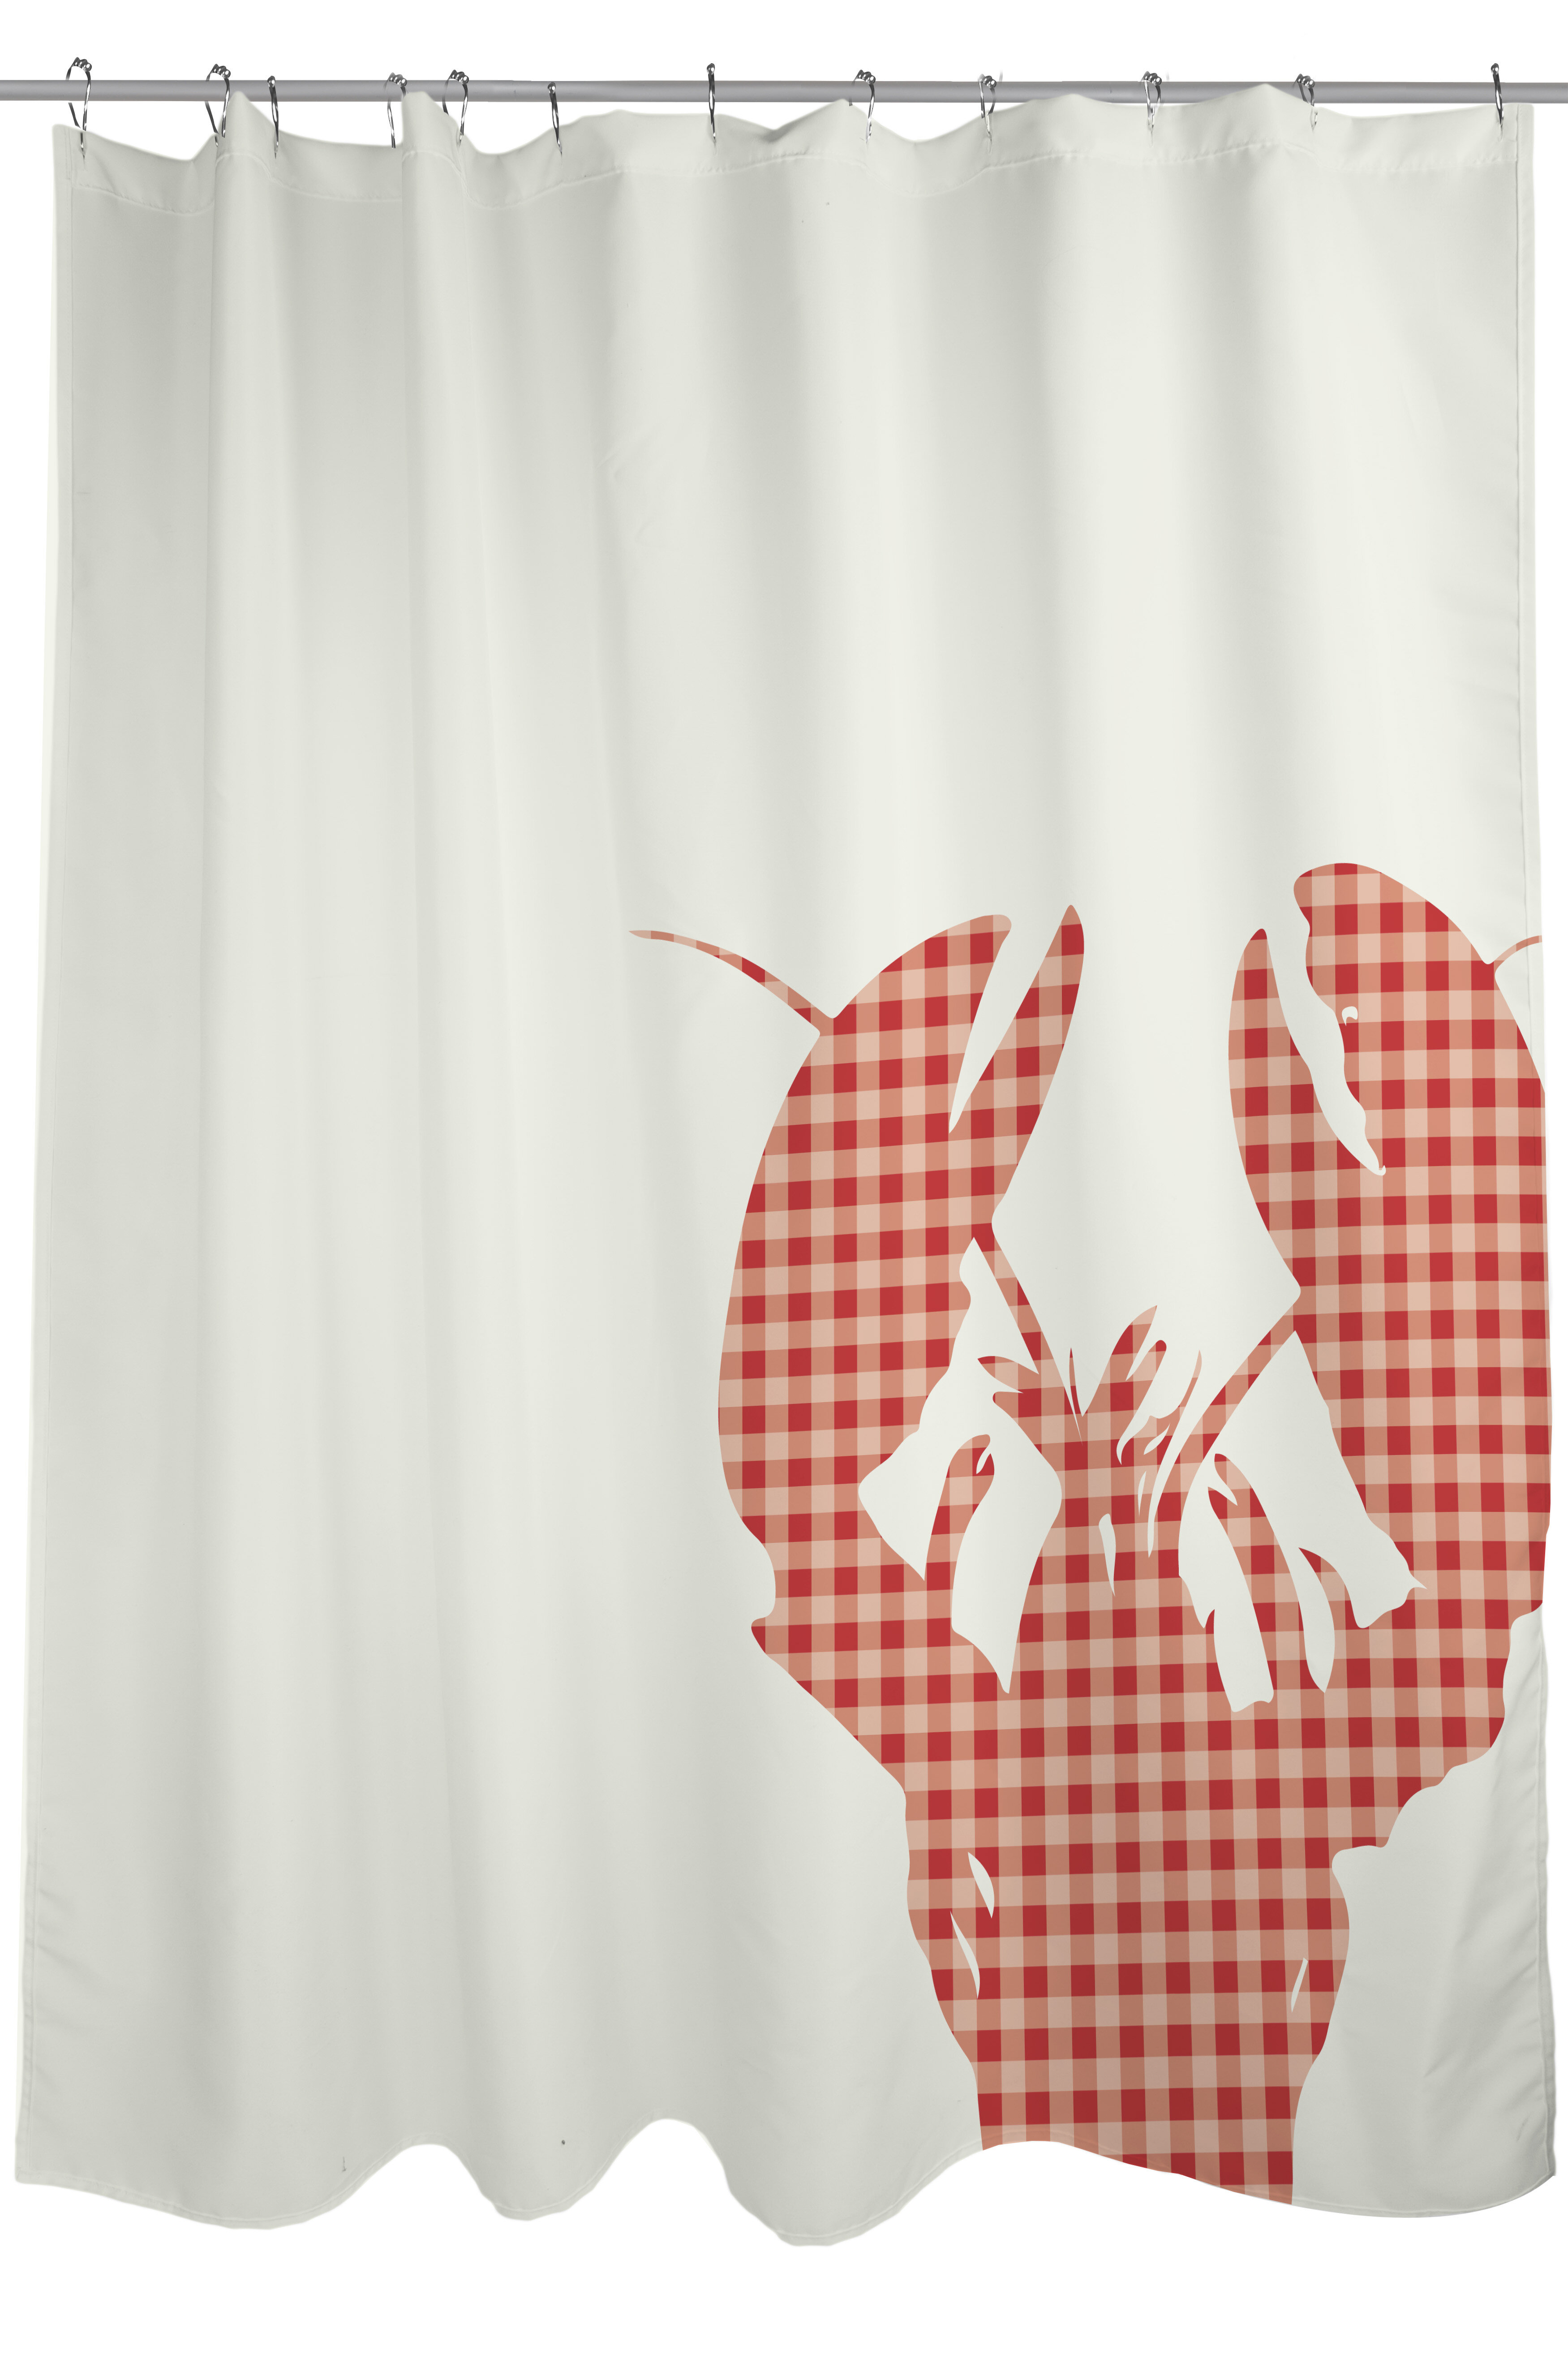 One Bella Casa Plaid Lobster Woven Polyester Shower Curtain